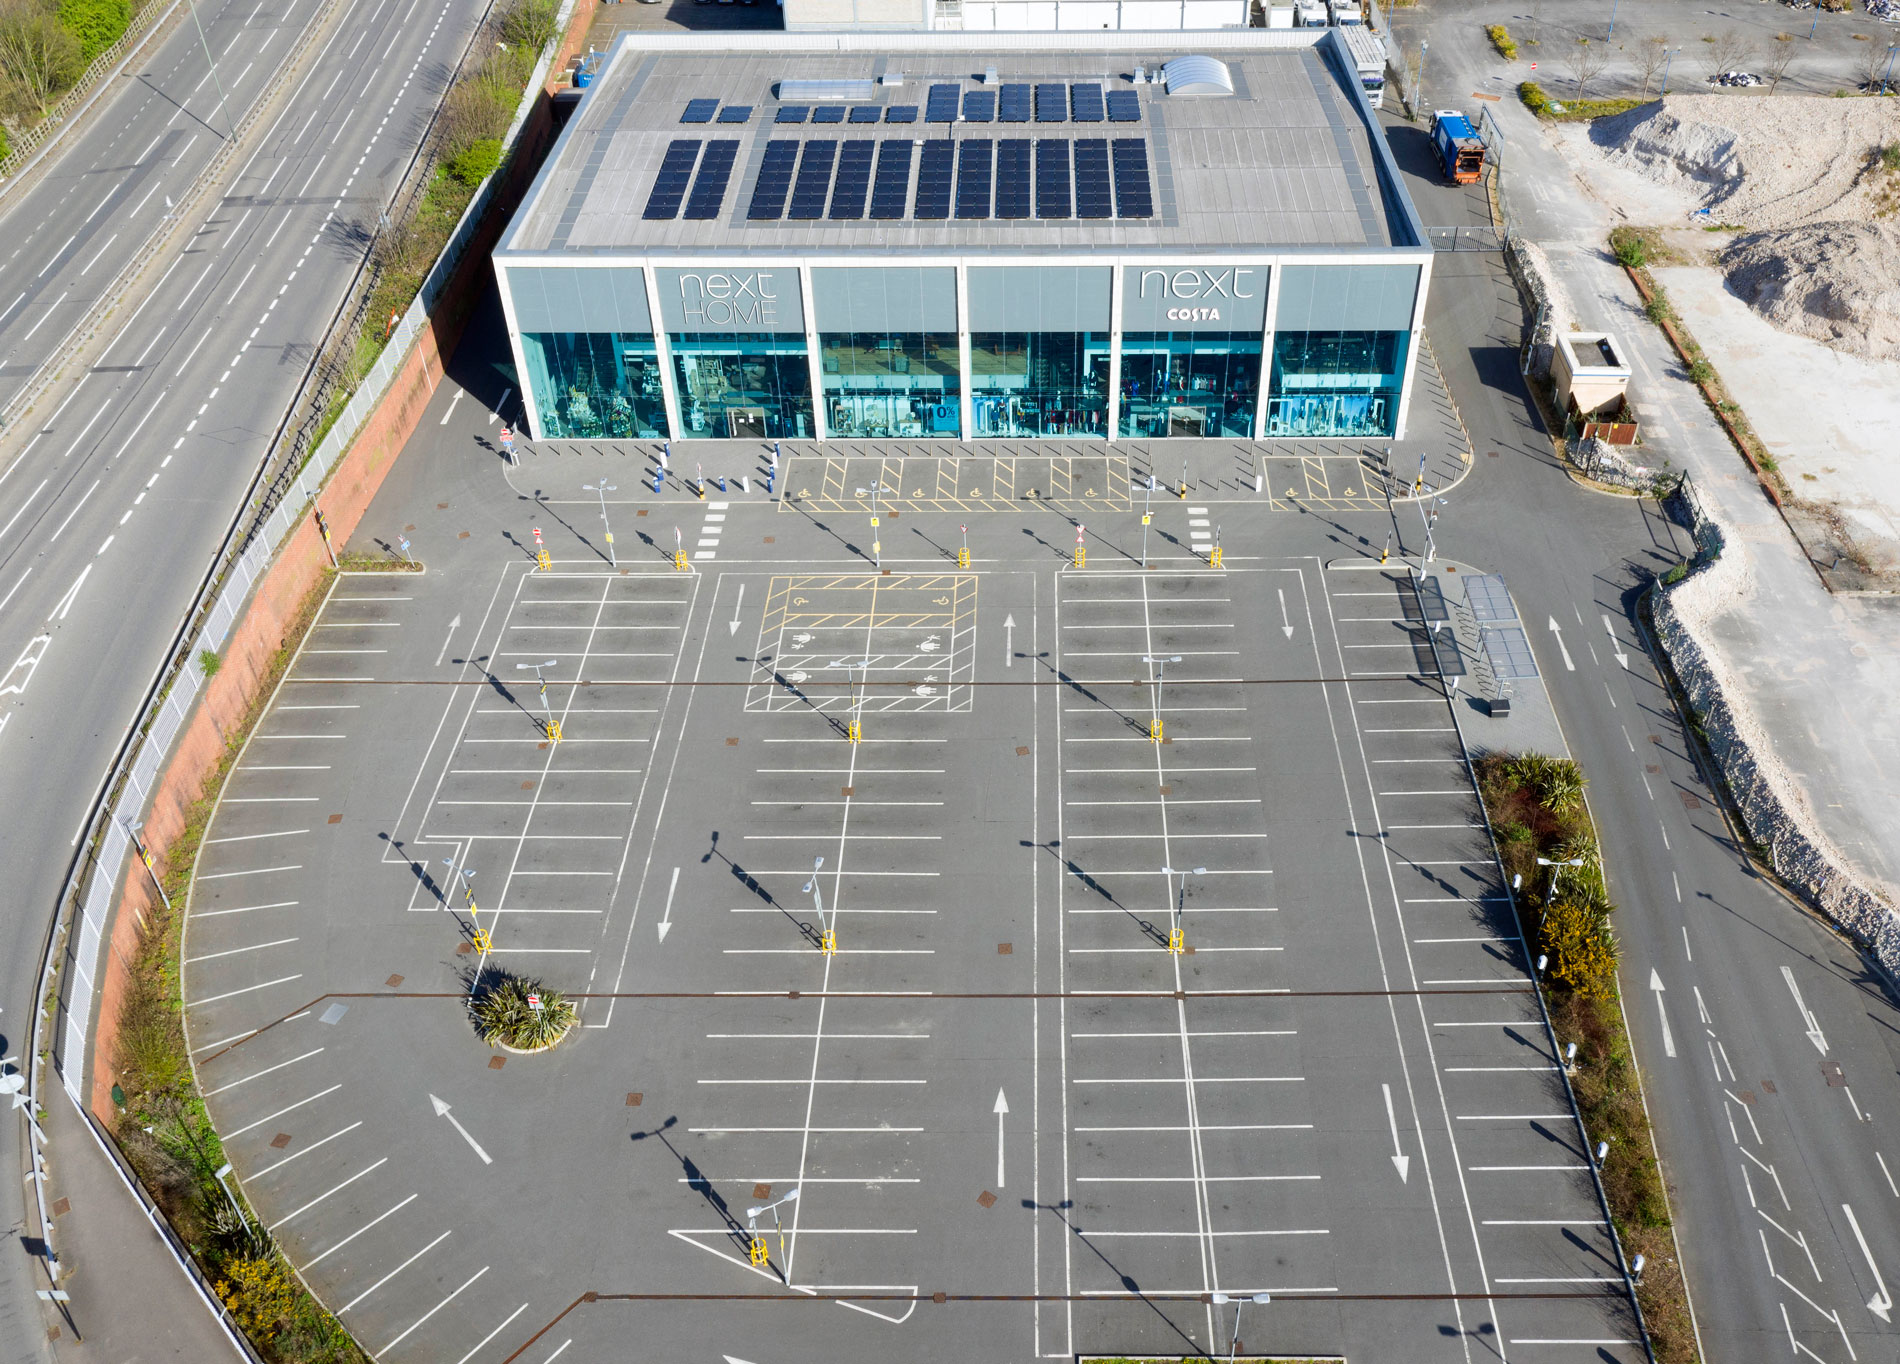 South London Retail Park 1st Day of Lockdown